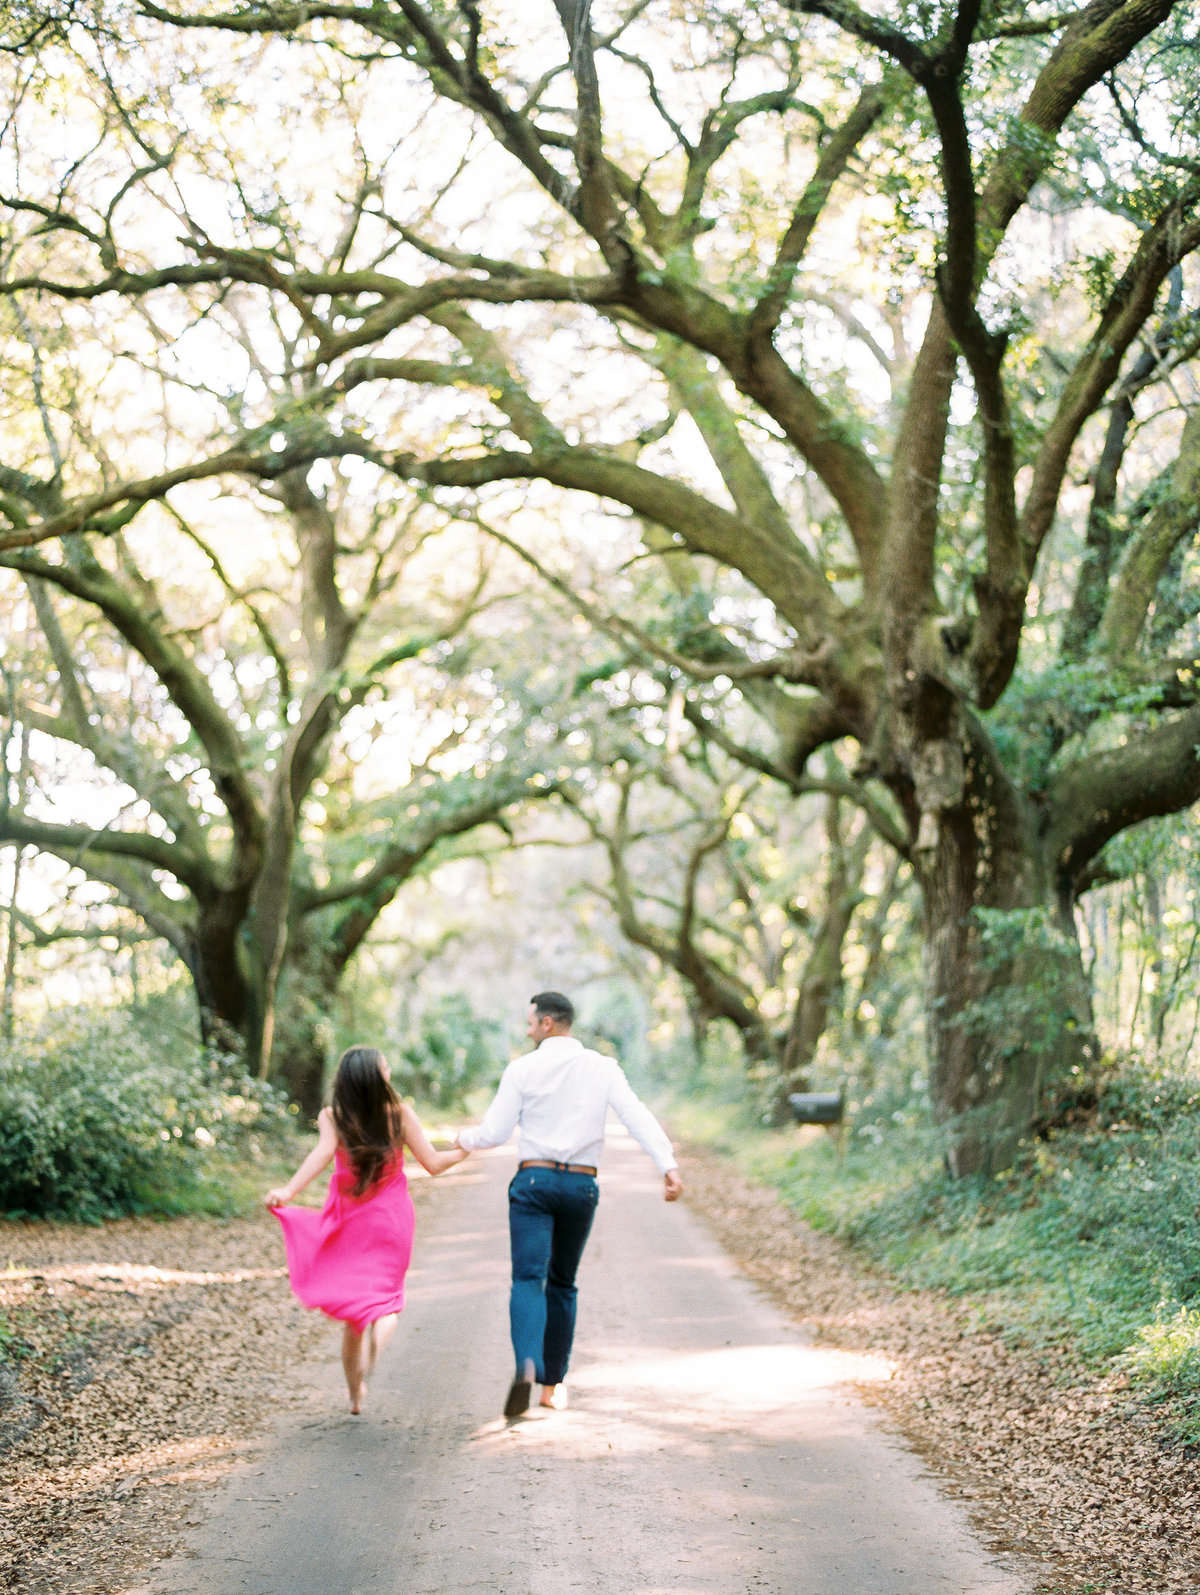 Fun engagement pictures under oak trees.